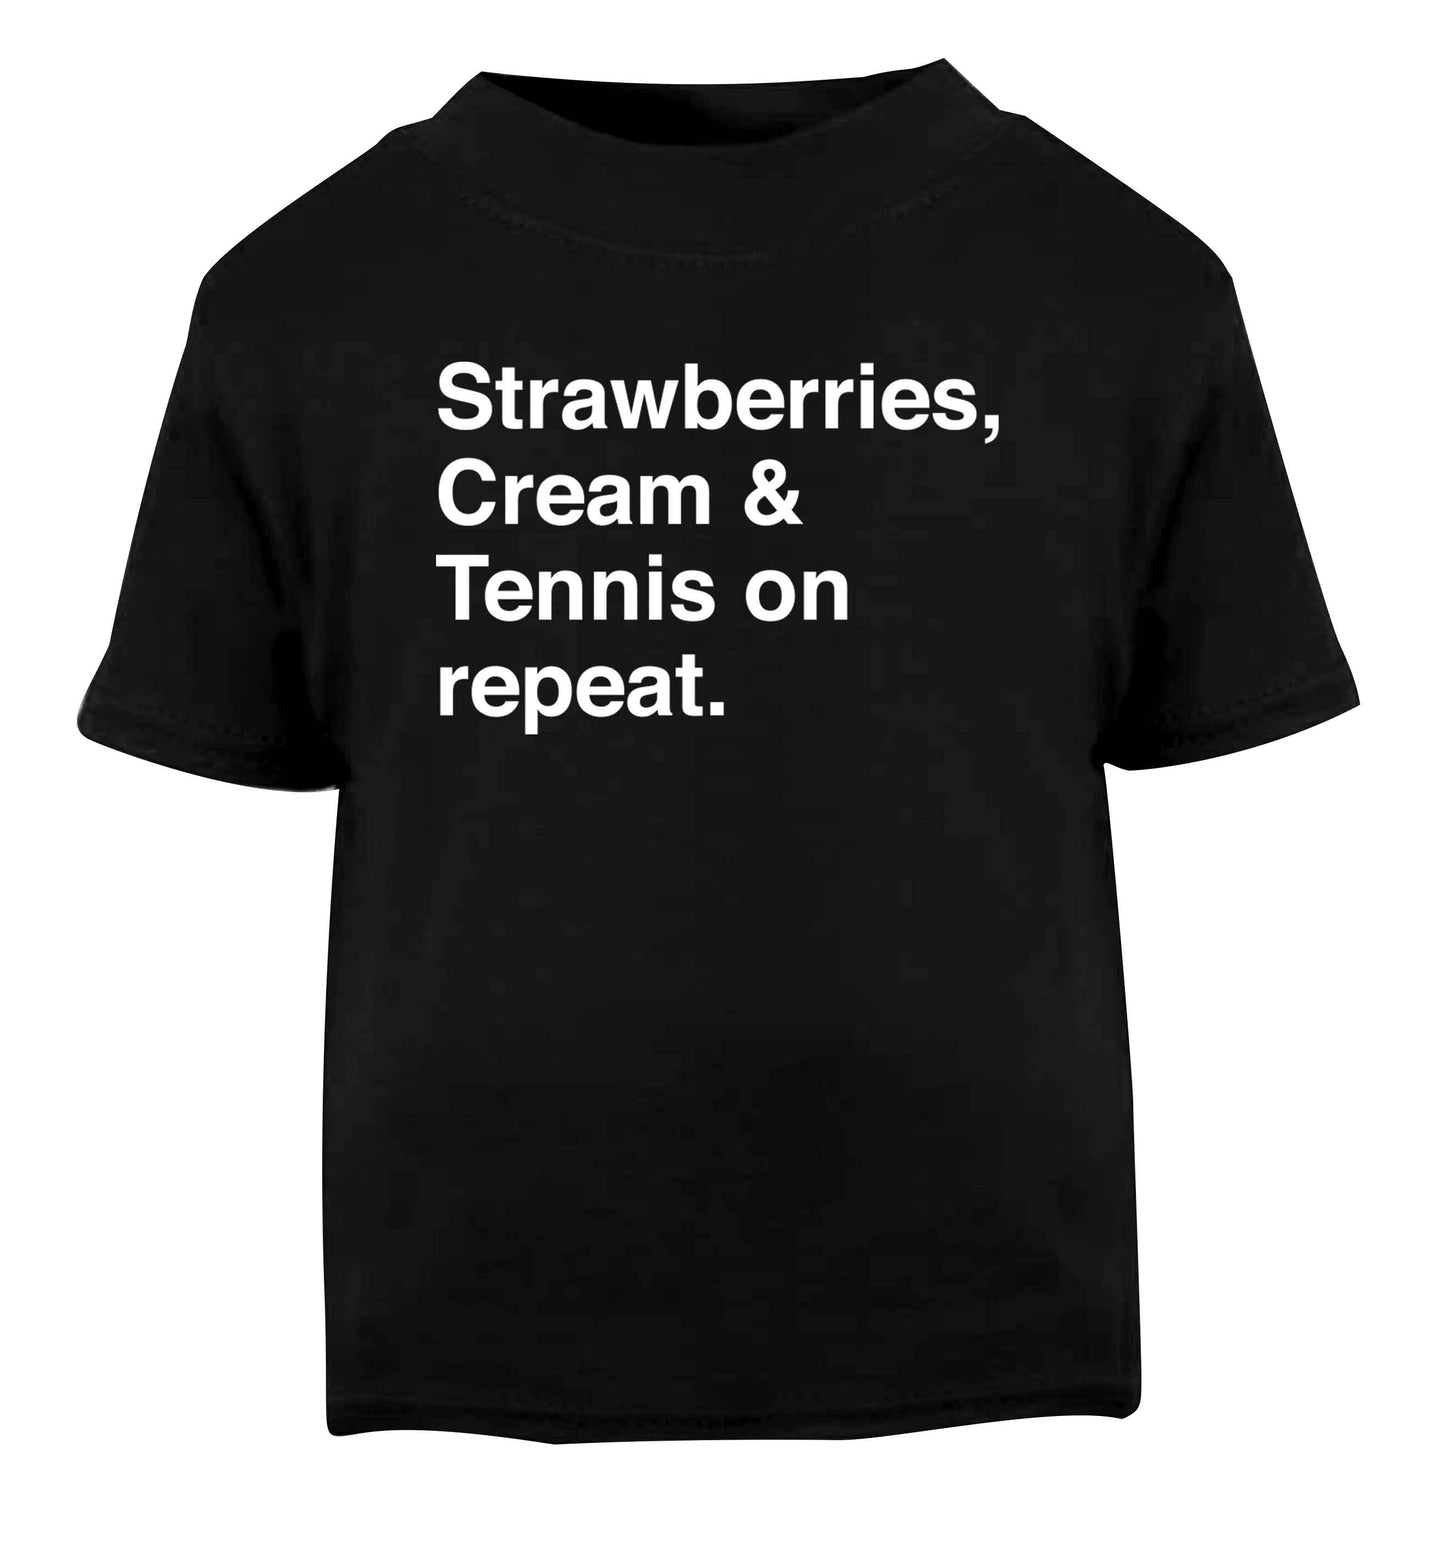 Strawberries, cream and tennis on repeat Black Baby Toddler Tshirt 2 years